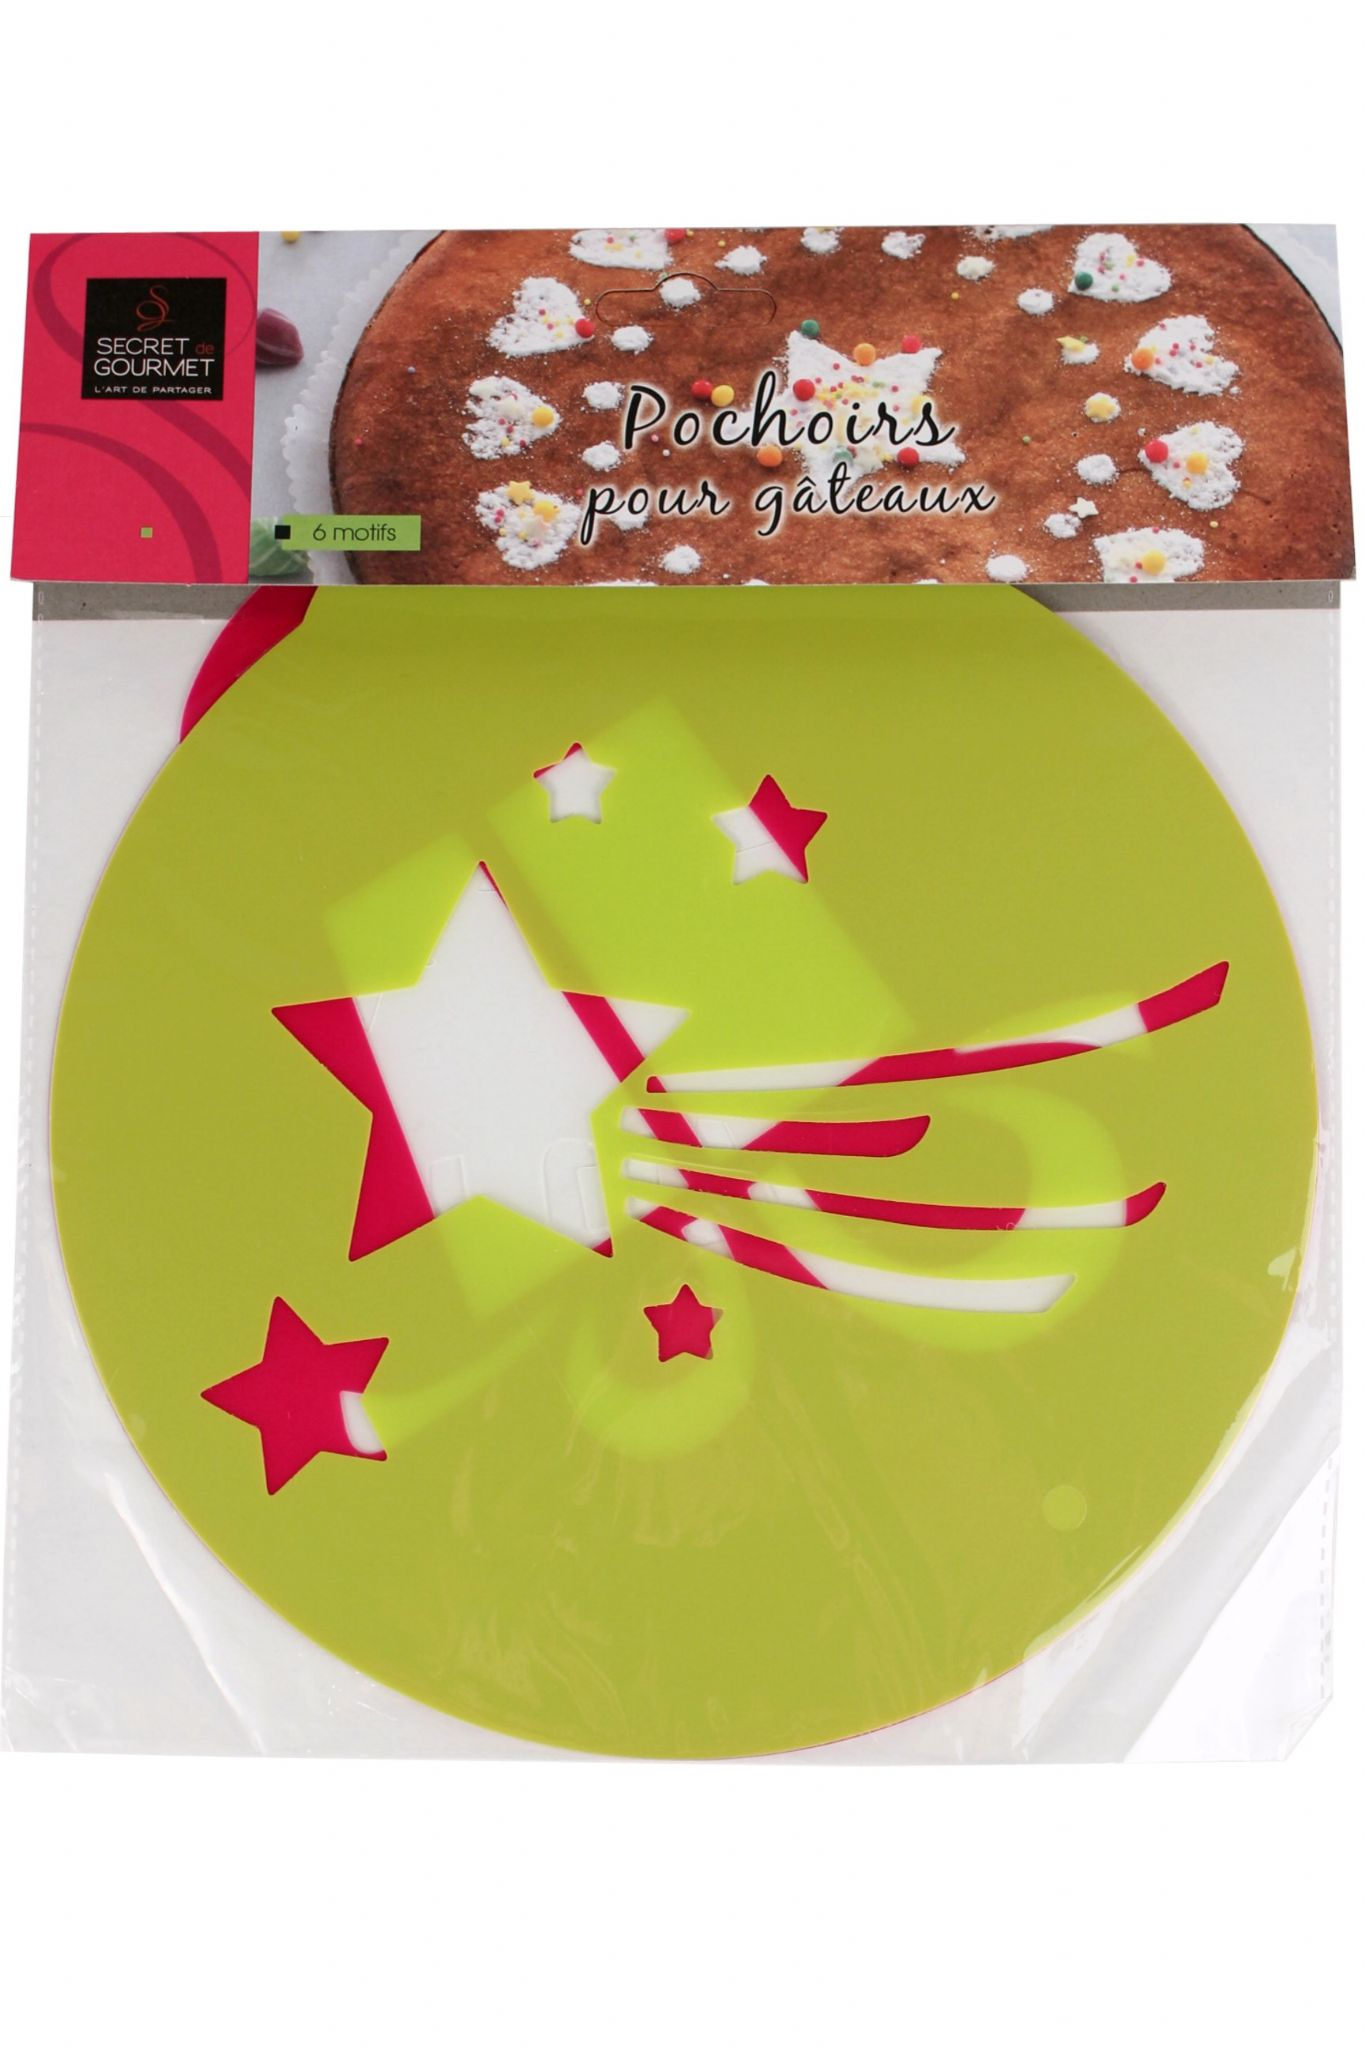 Round Cake Decorating Stencils Present Shooting Star and ...